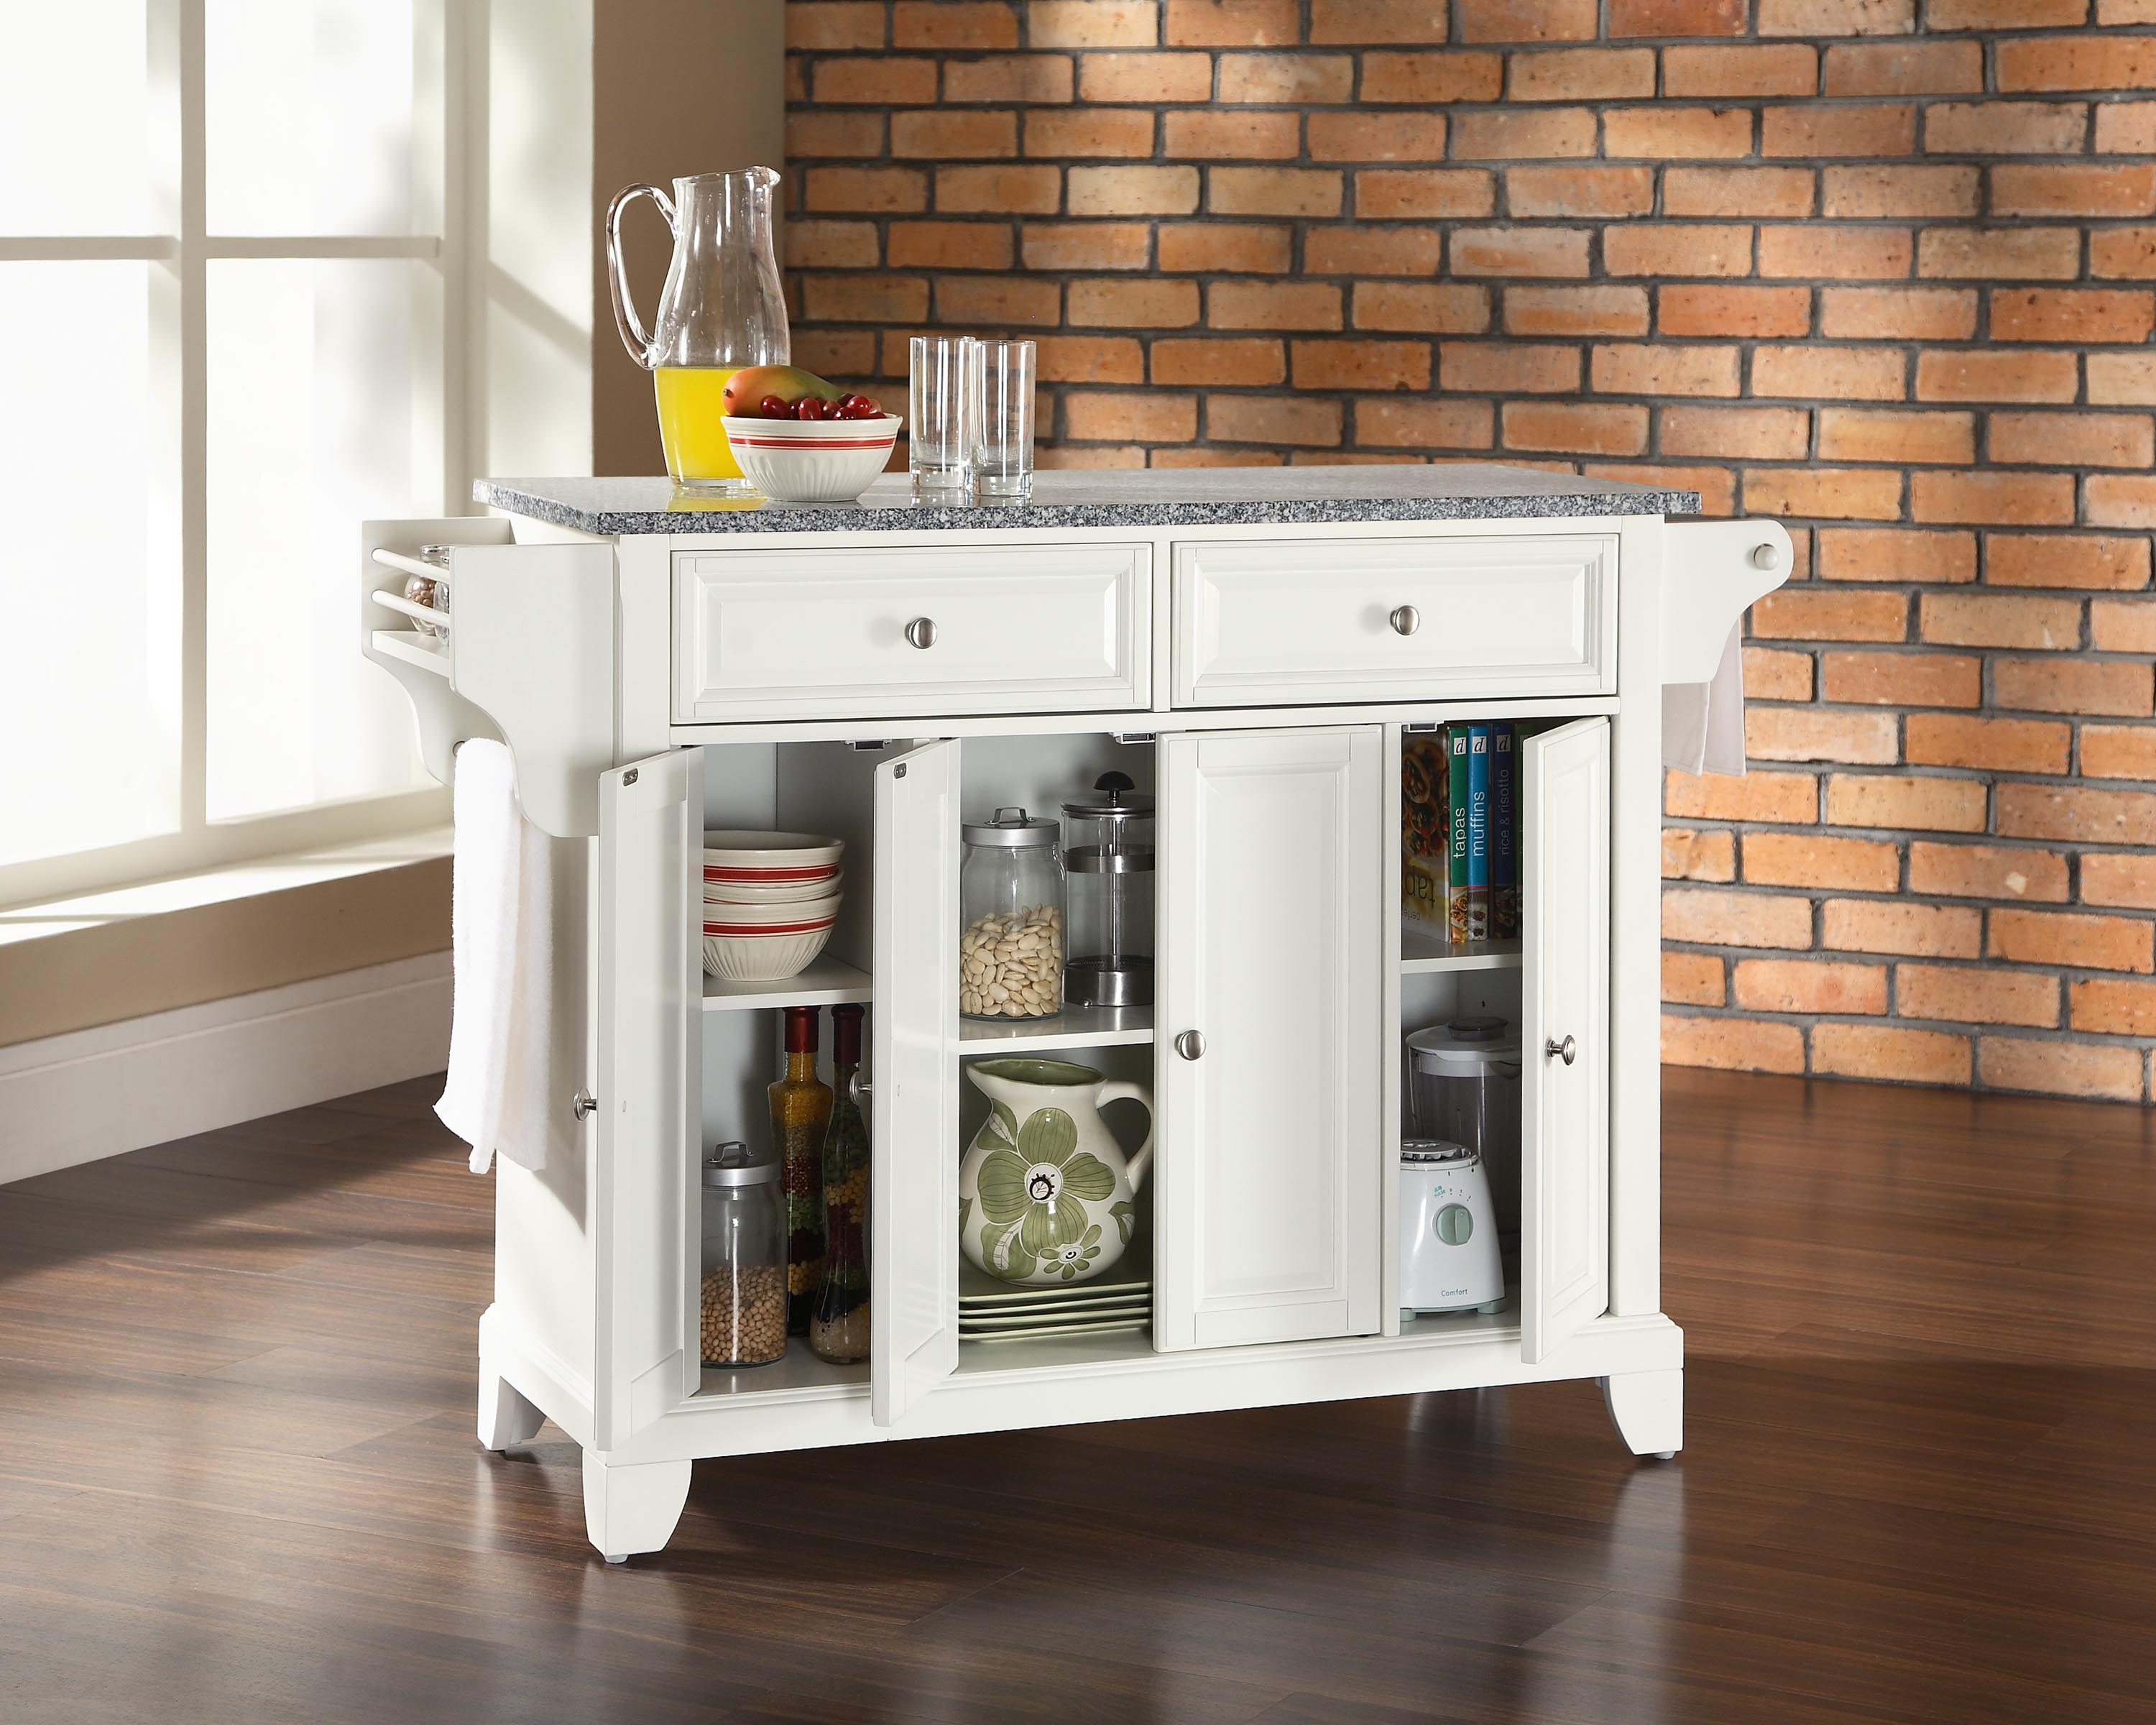 Hocker Benjamin Von Ikea Schweiz ~  Granite Top Kitchen Island in White Finish Kitchen Island 0 0 jpg